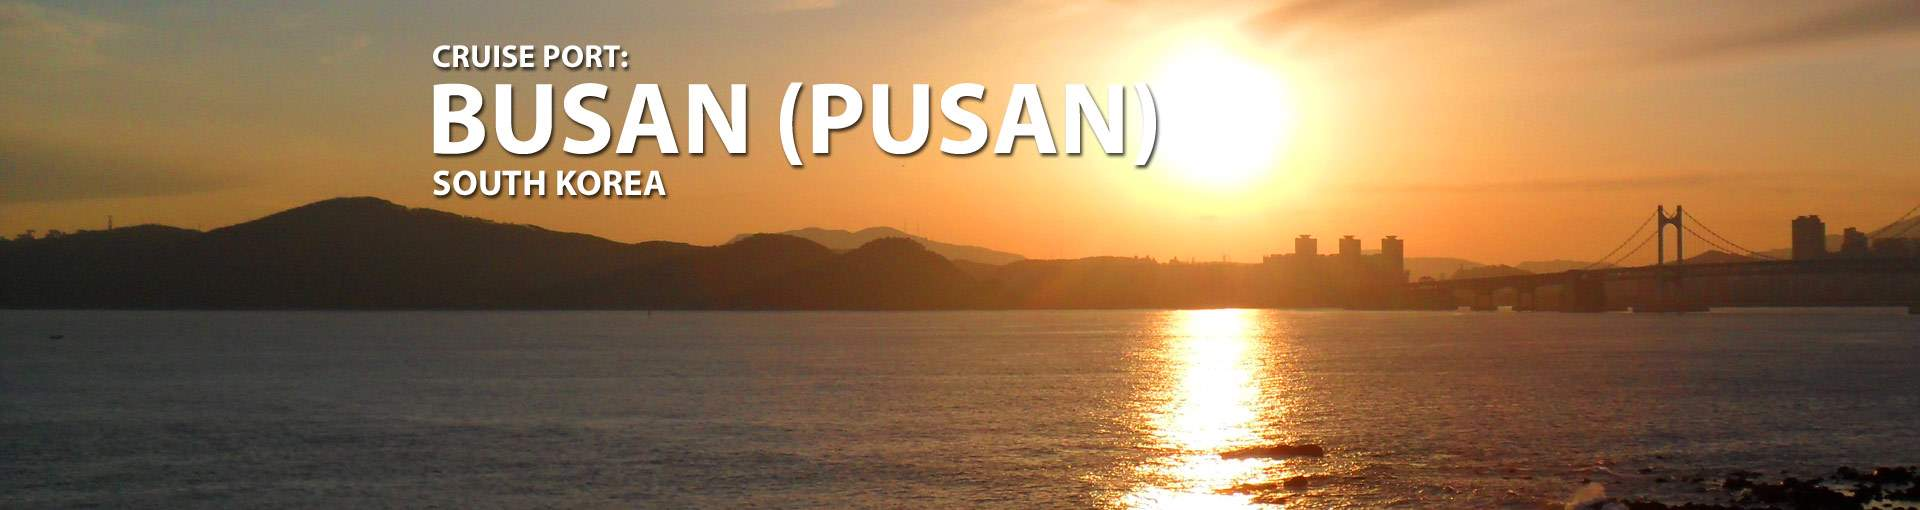 Cruises from Pusan, South Korea